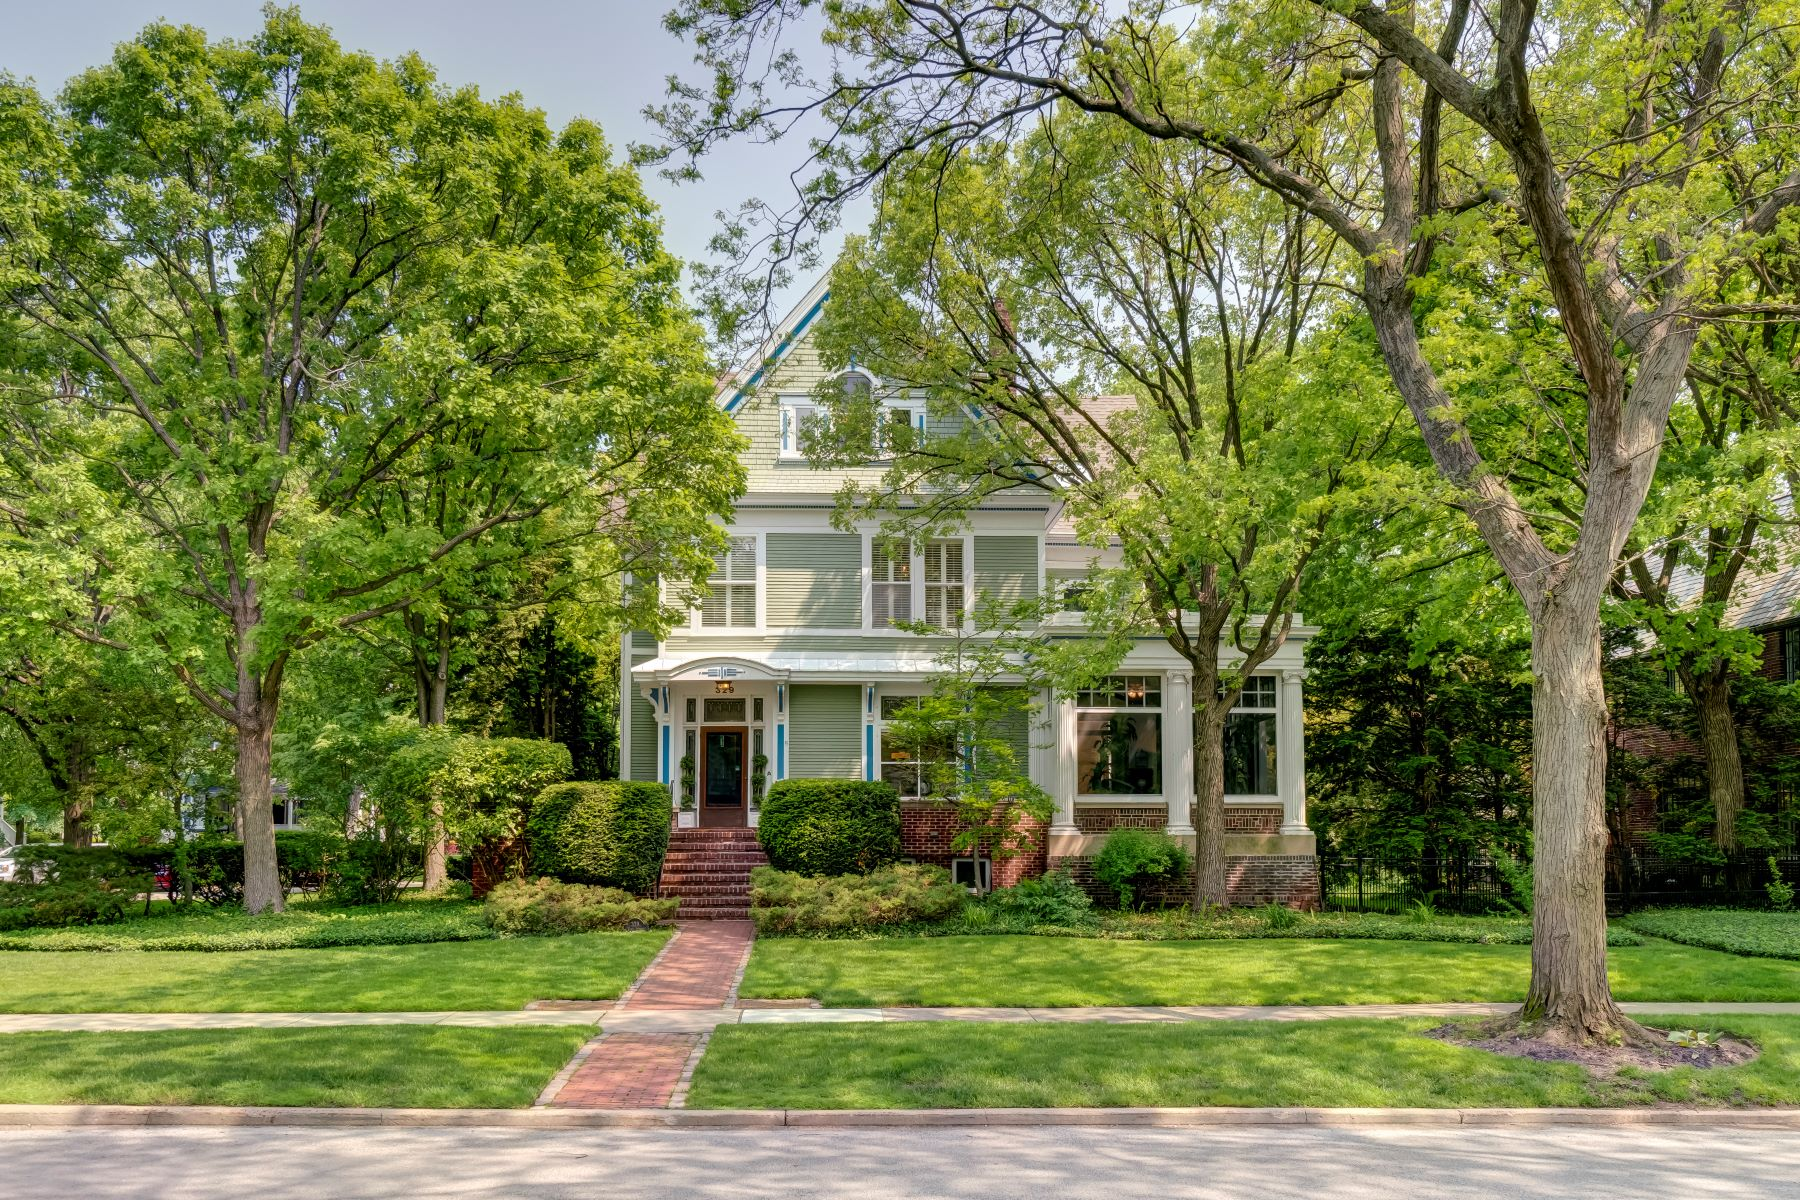 Single Family Homes for Active at Meticulously Renovated Evanston Home! 329 Lake Street Evanston, Illinois 60201 United States